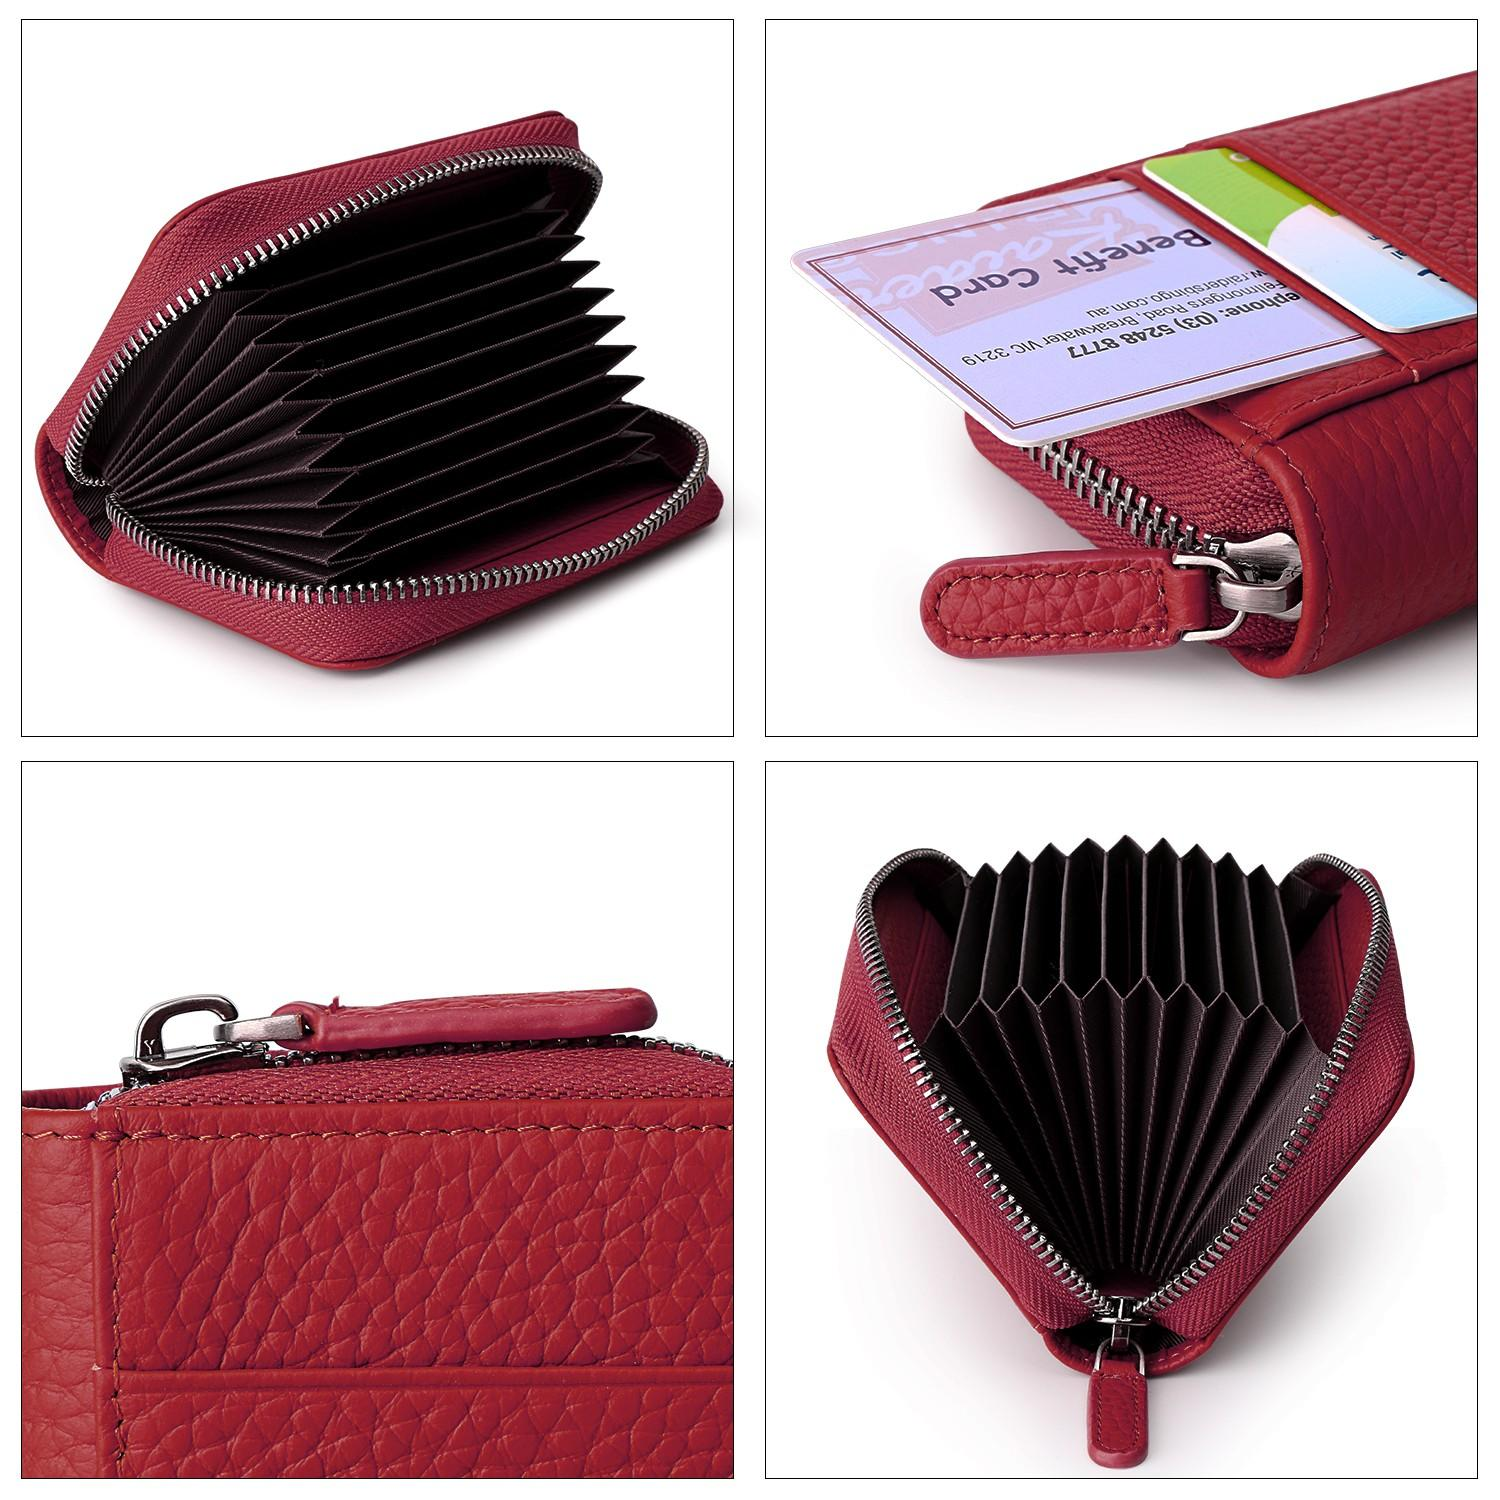 AIVI multifunction leather card case wallet manufacturer for iphone 8 / 8plus-3